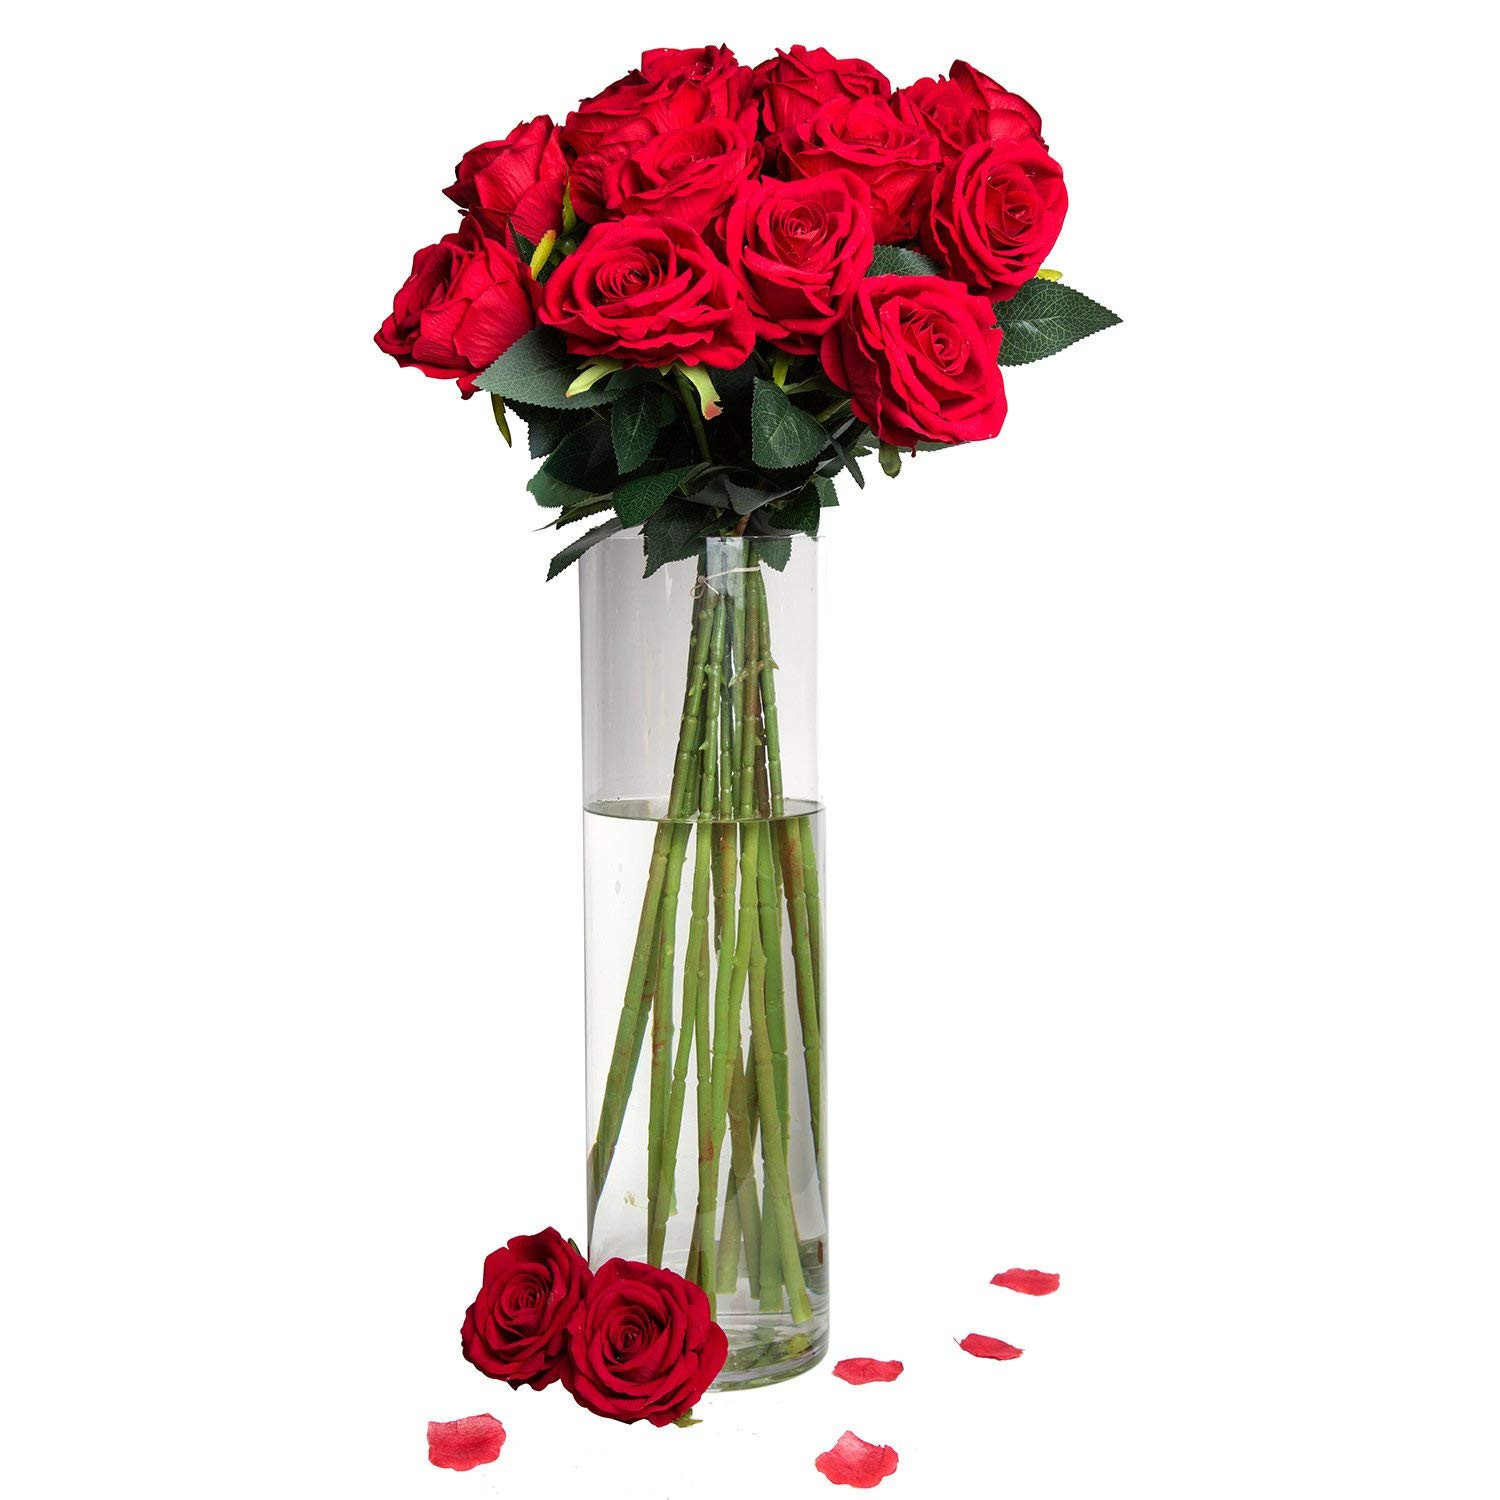 """Amazon Artificial Silk Roses Red Velvet 30"""" Long Stemmed 1 Dozen Fake Flowers for Bouquets Weddings Valentines By Royal Imports Home & Kitchen"""